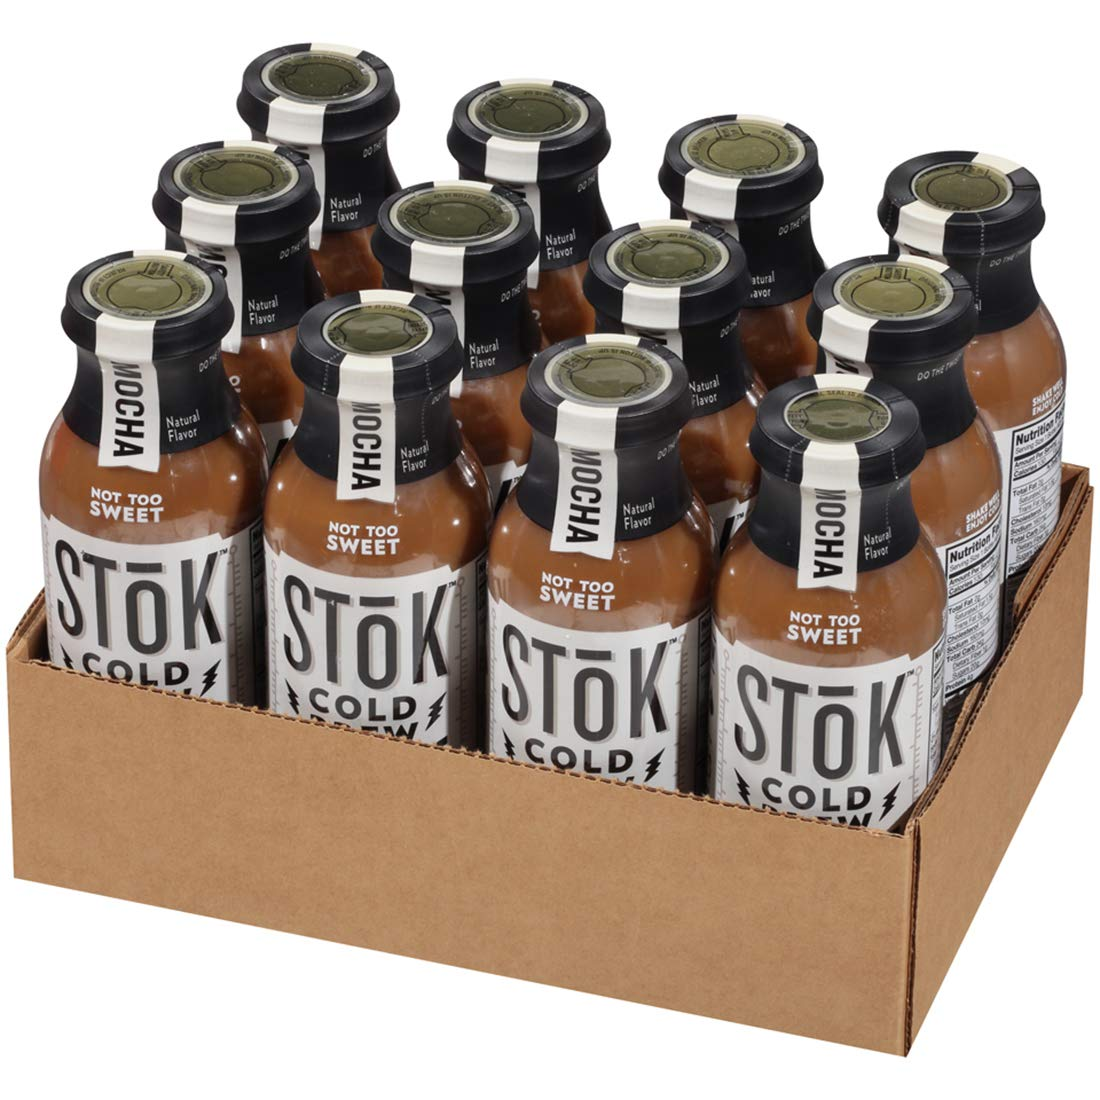 SToK Cold-Brew Iced Coffee, Mocha, 13.7 Ounce, 12 Count by SToK